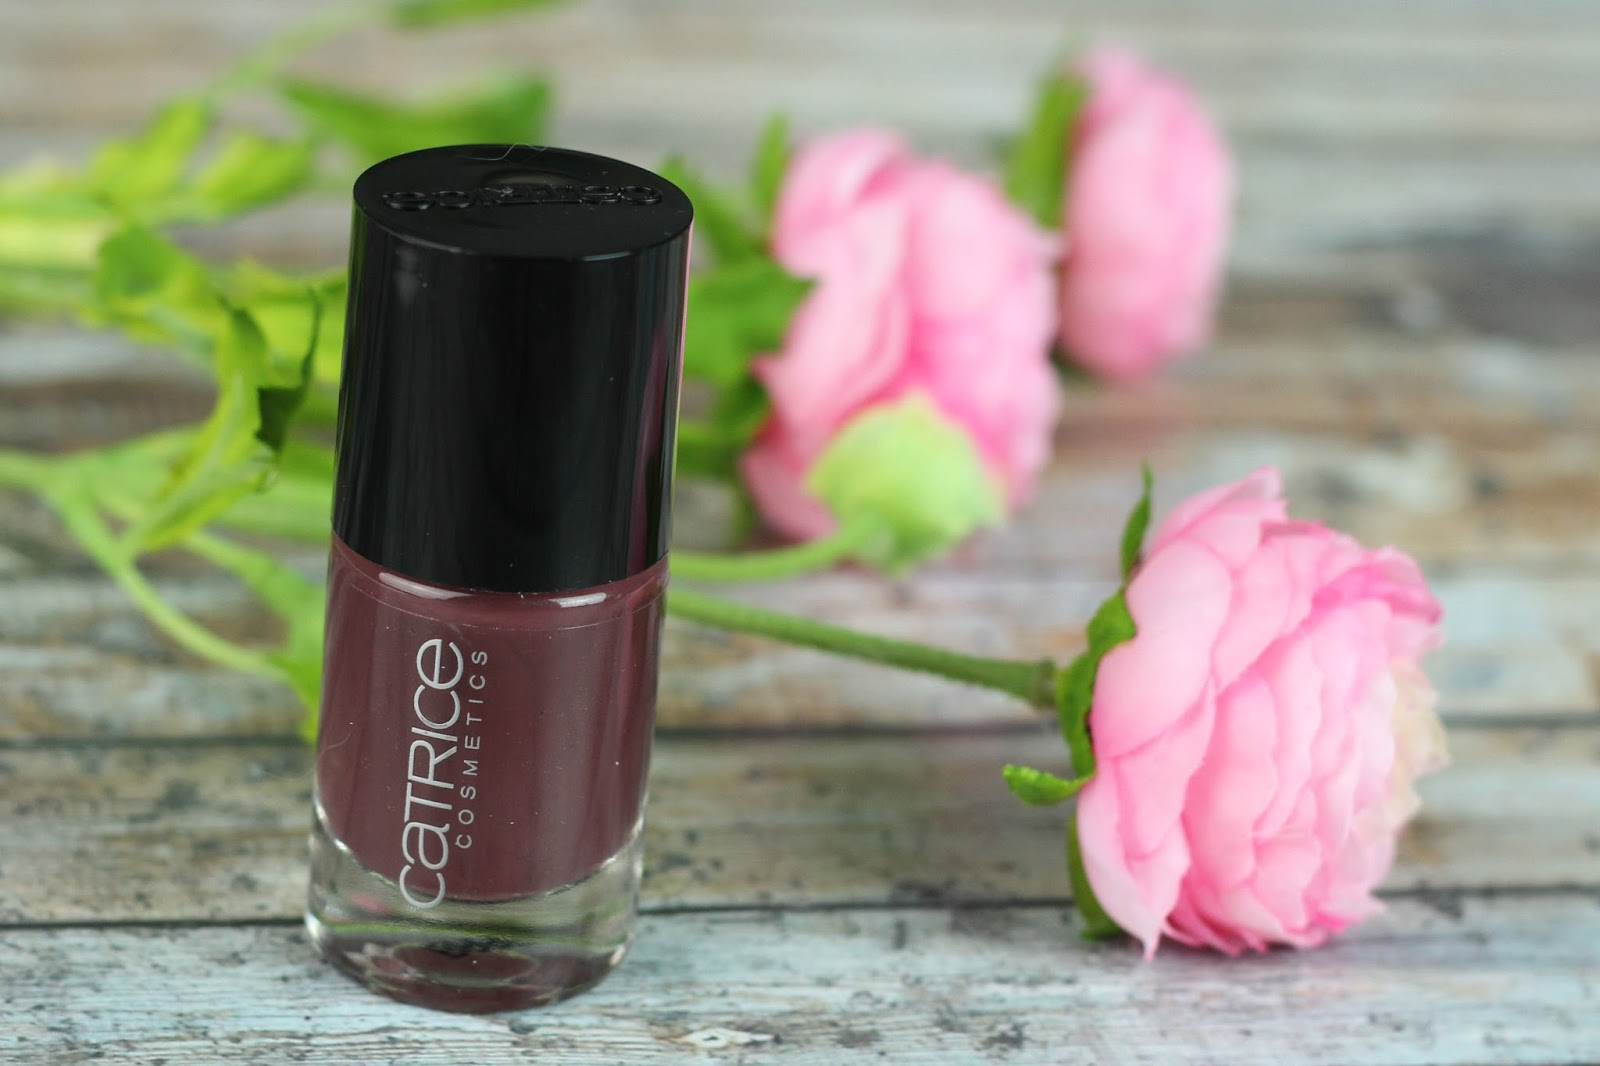 CATRICE, cremelack, deckkraft, drogerie, farbtrends, glänzendes finish, haltbarkeit, nagellack, nailpolish, neues sortiment, Neuheiten Herbst / Winter 2016, review, swatches, tragebilder, Ultimate Nail Lacquer,